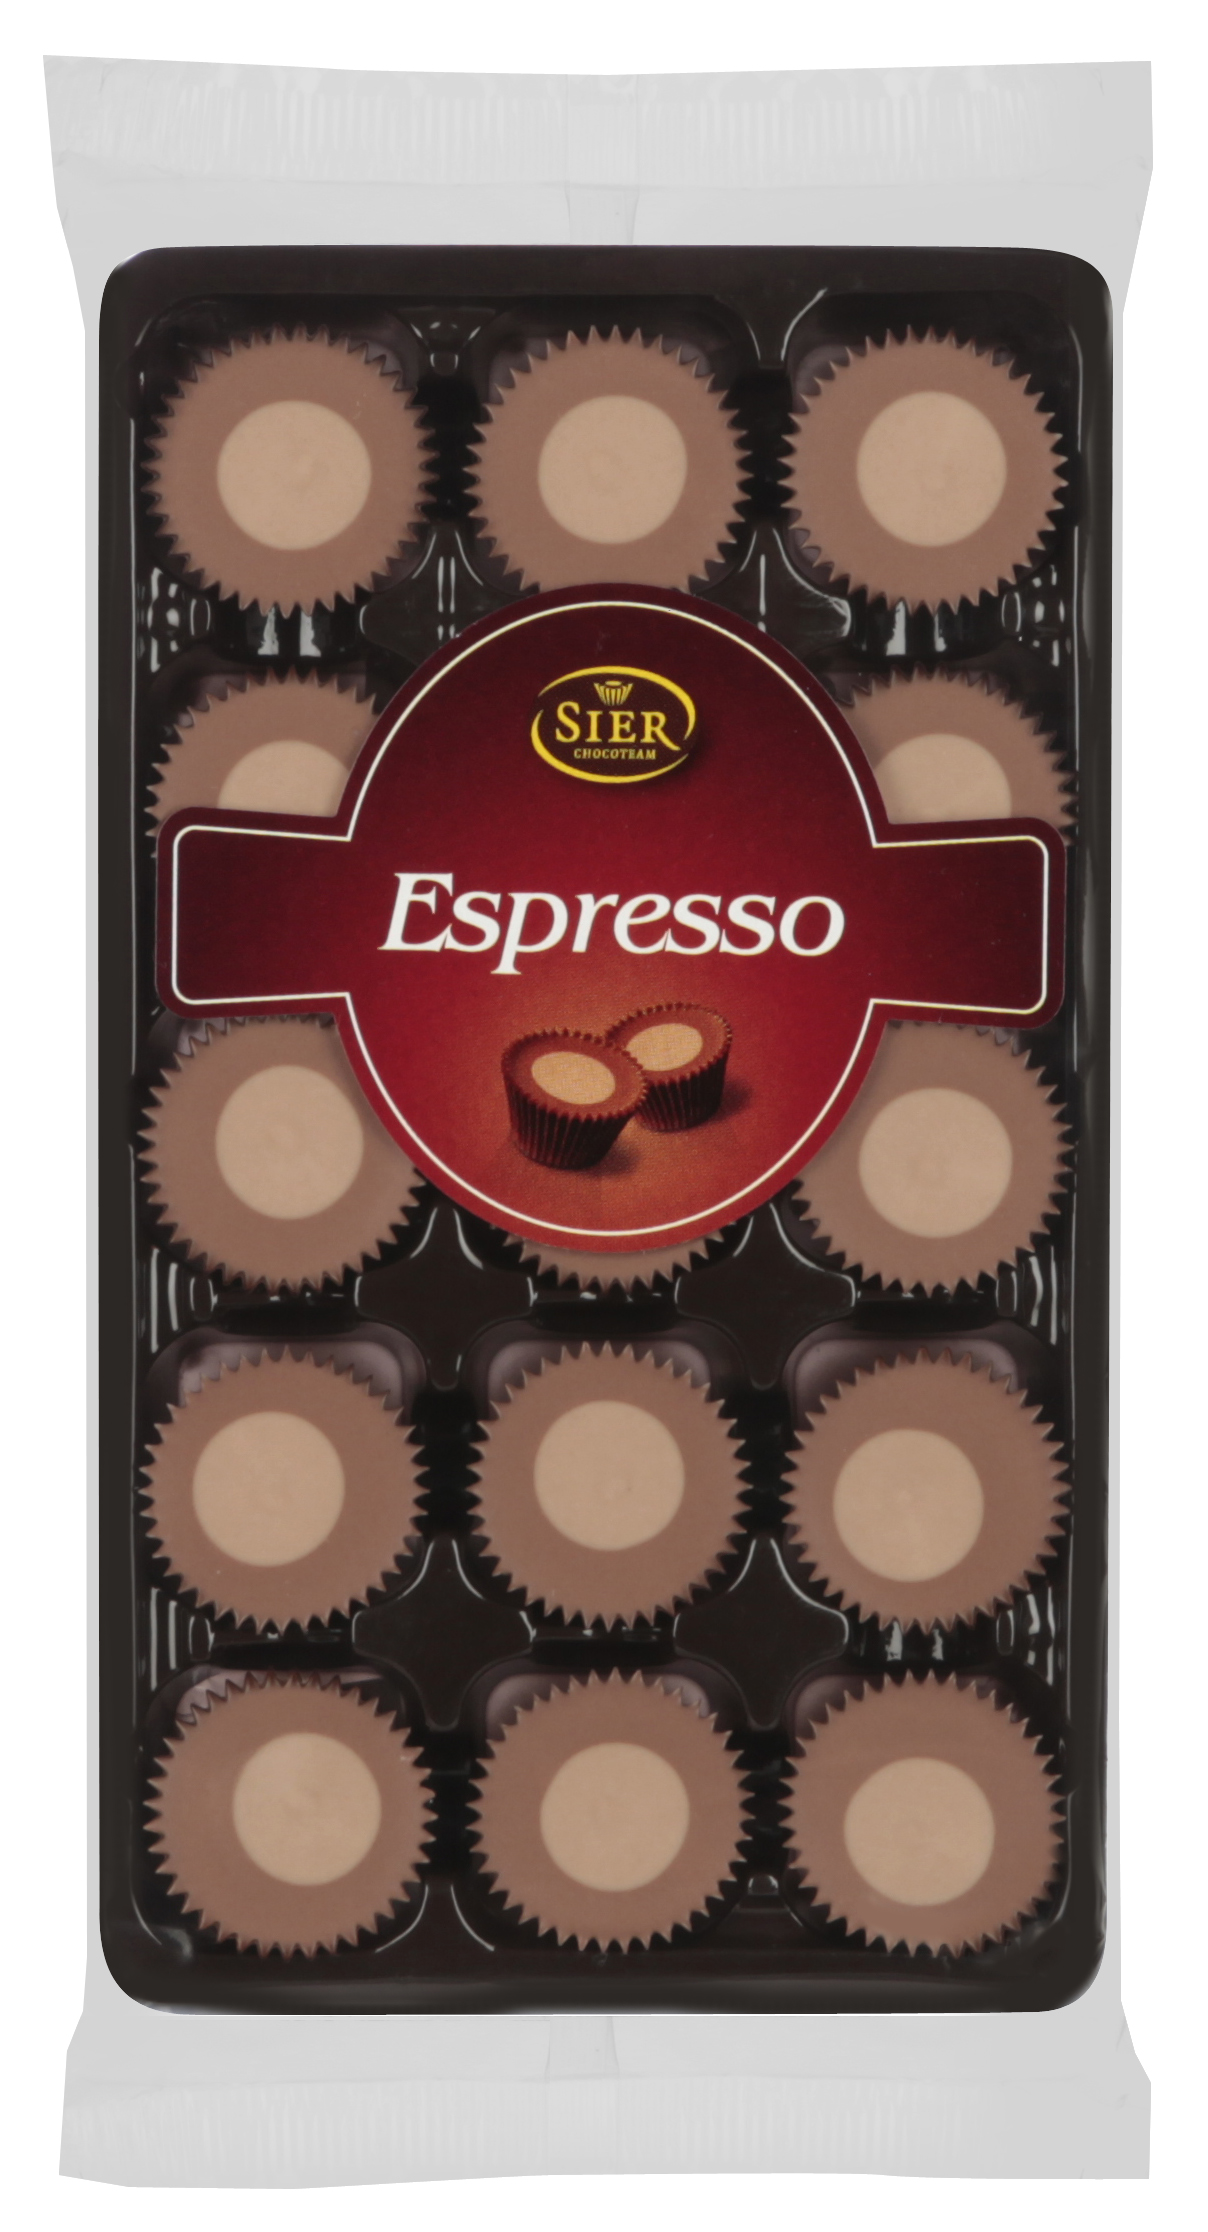 Sier Espresso Cups (OUT OF STOCK)